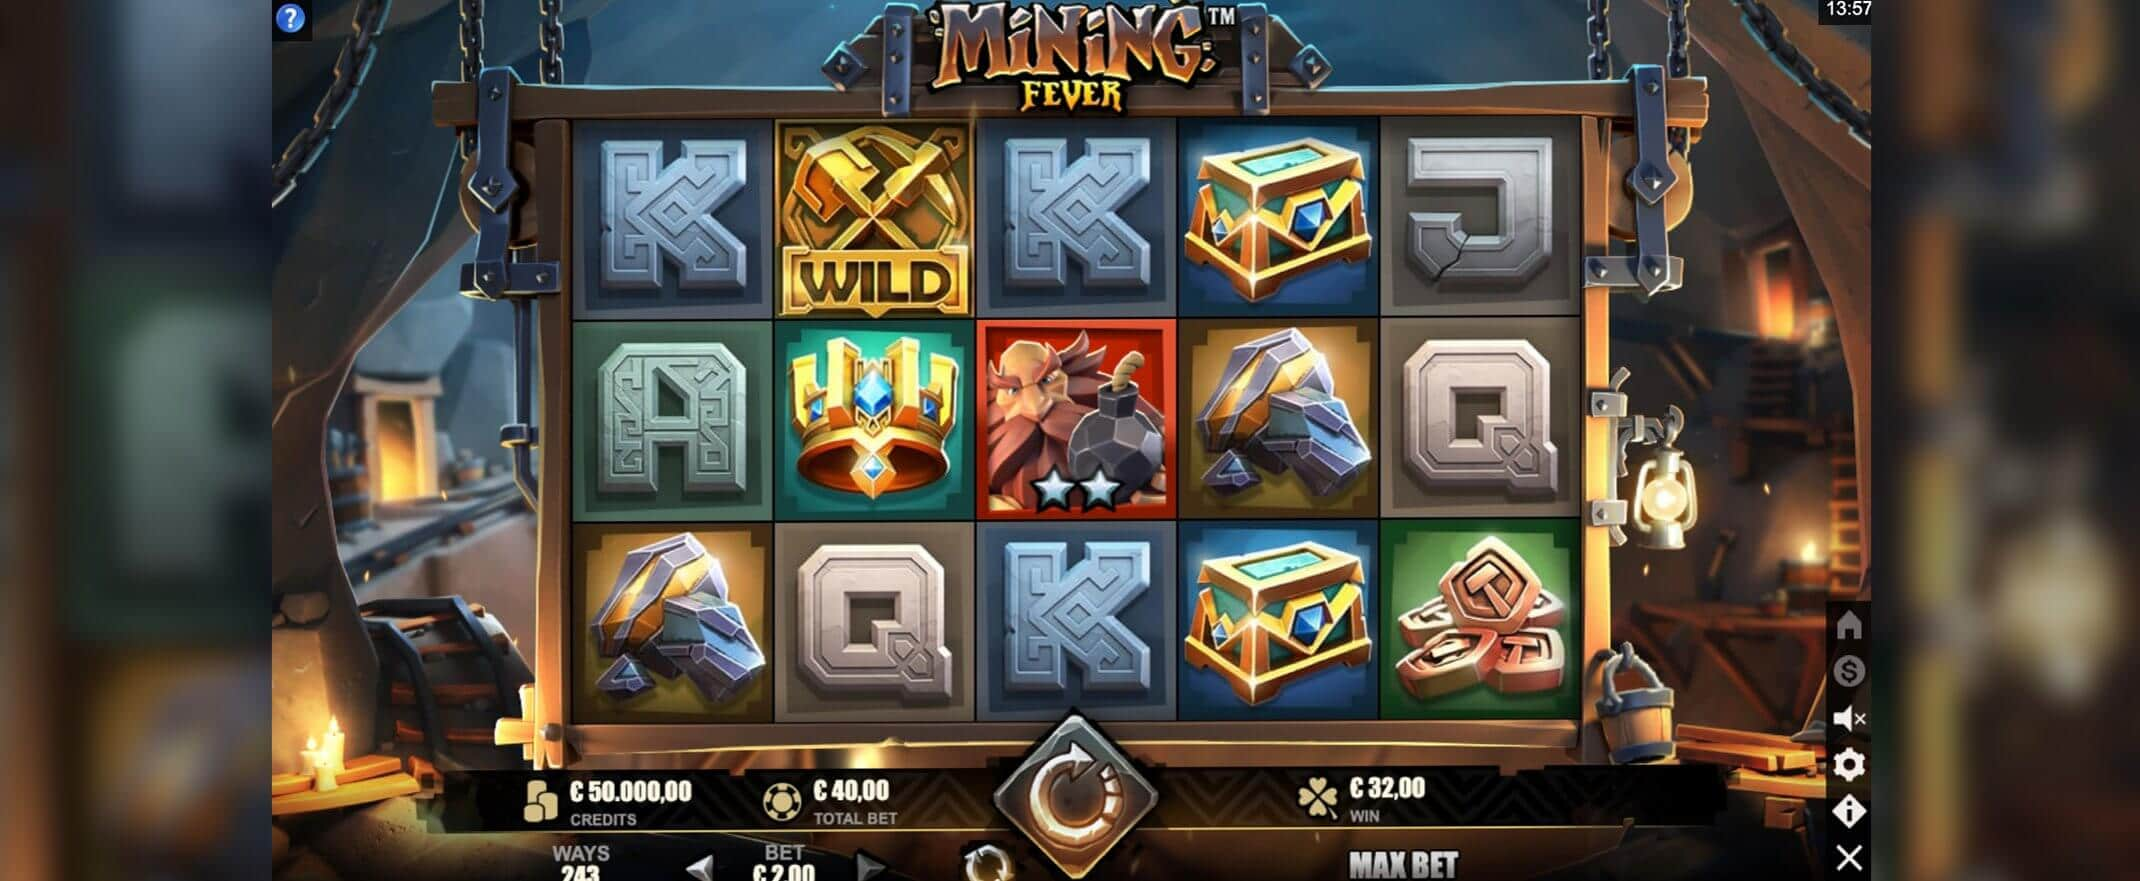 Mining Fever by Microgaming